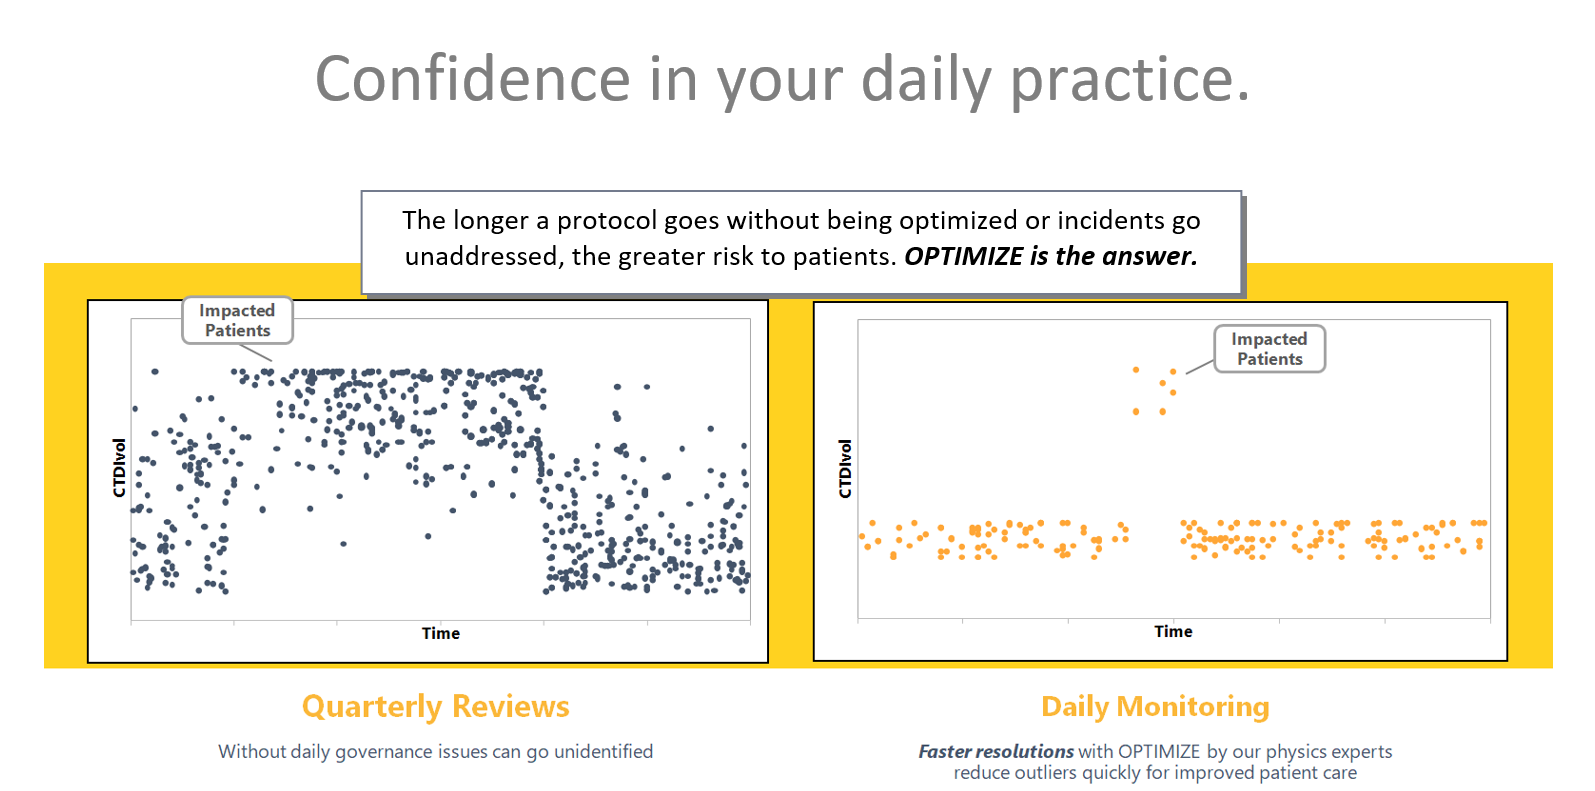 Confidence in your daily practice